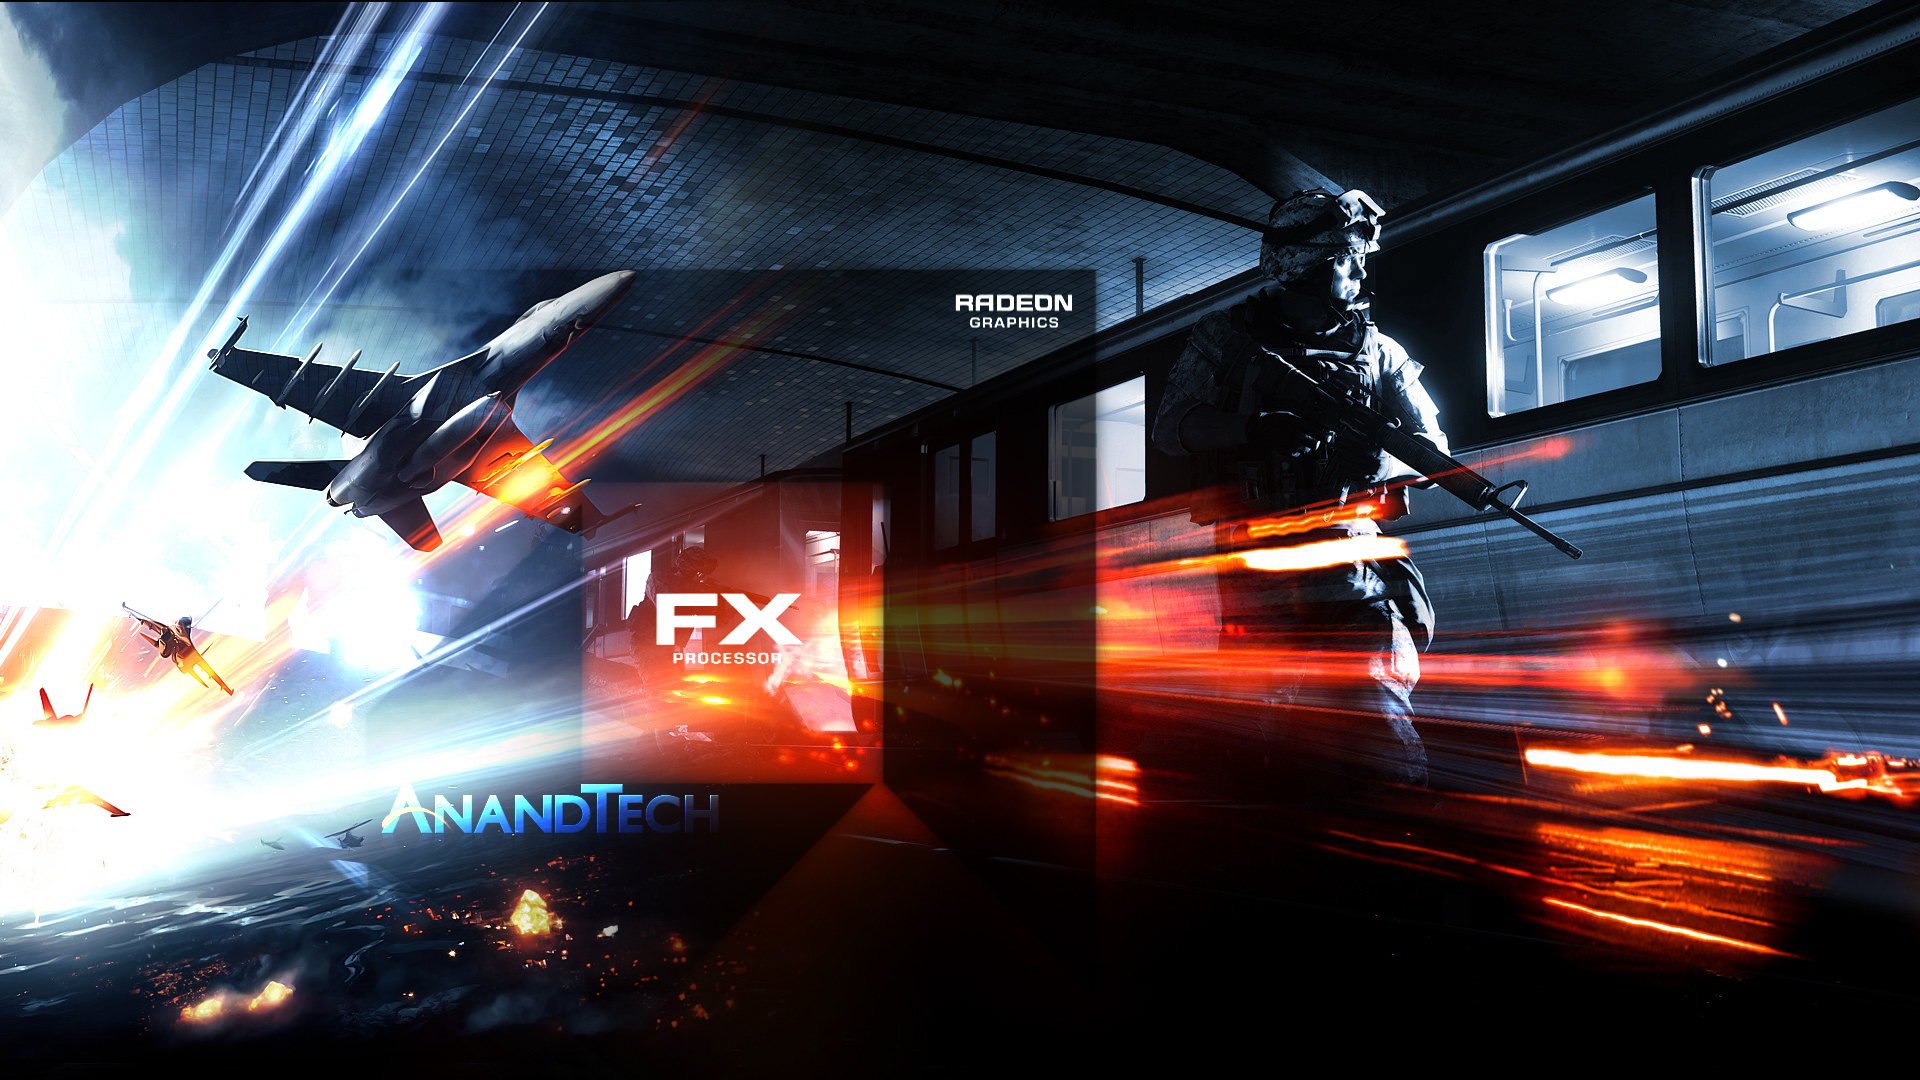 Pin anandtech hd wallpaper amd fx for fanboys 1920 1080 on pinterest